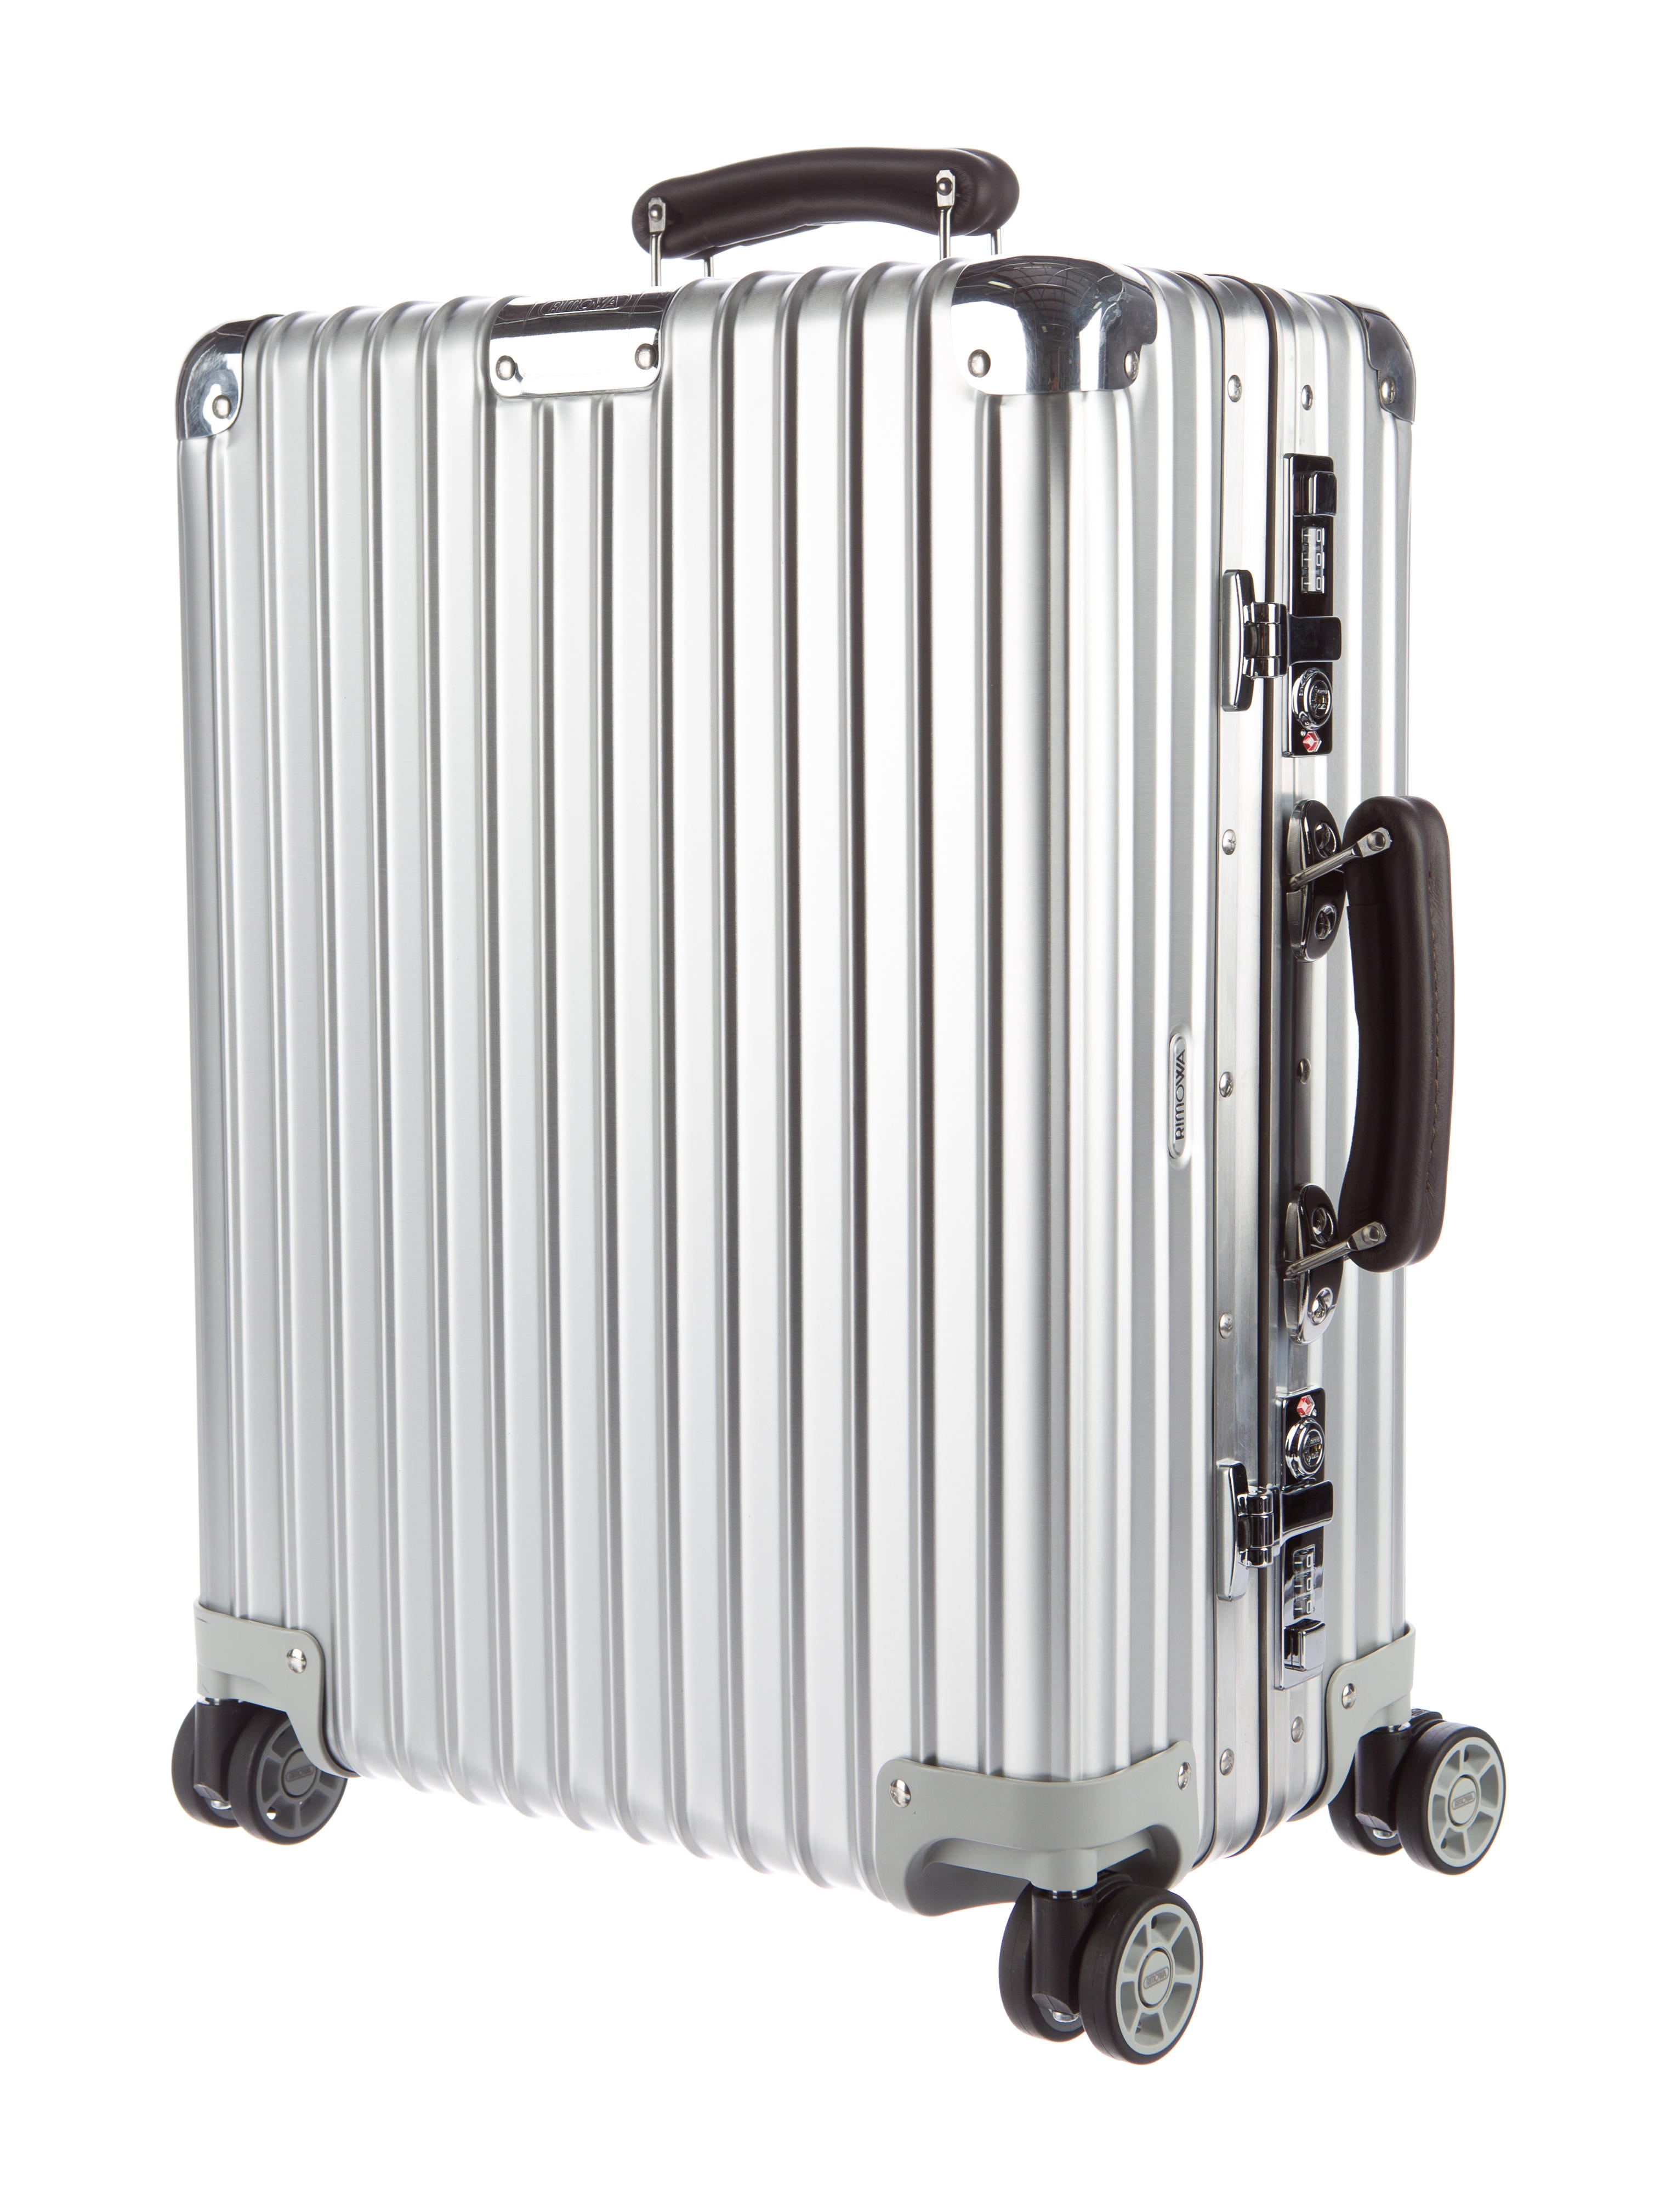 rimowa classic flight multiwheel cabin w tags luggage. Black Bedroom Furniture Sets. Home Design Ideas